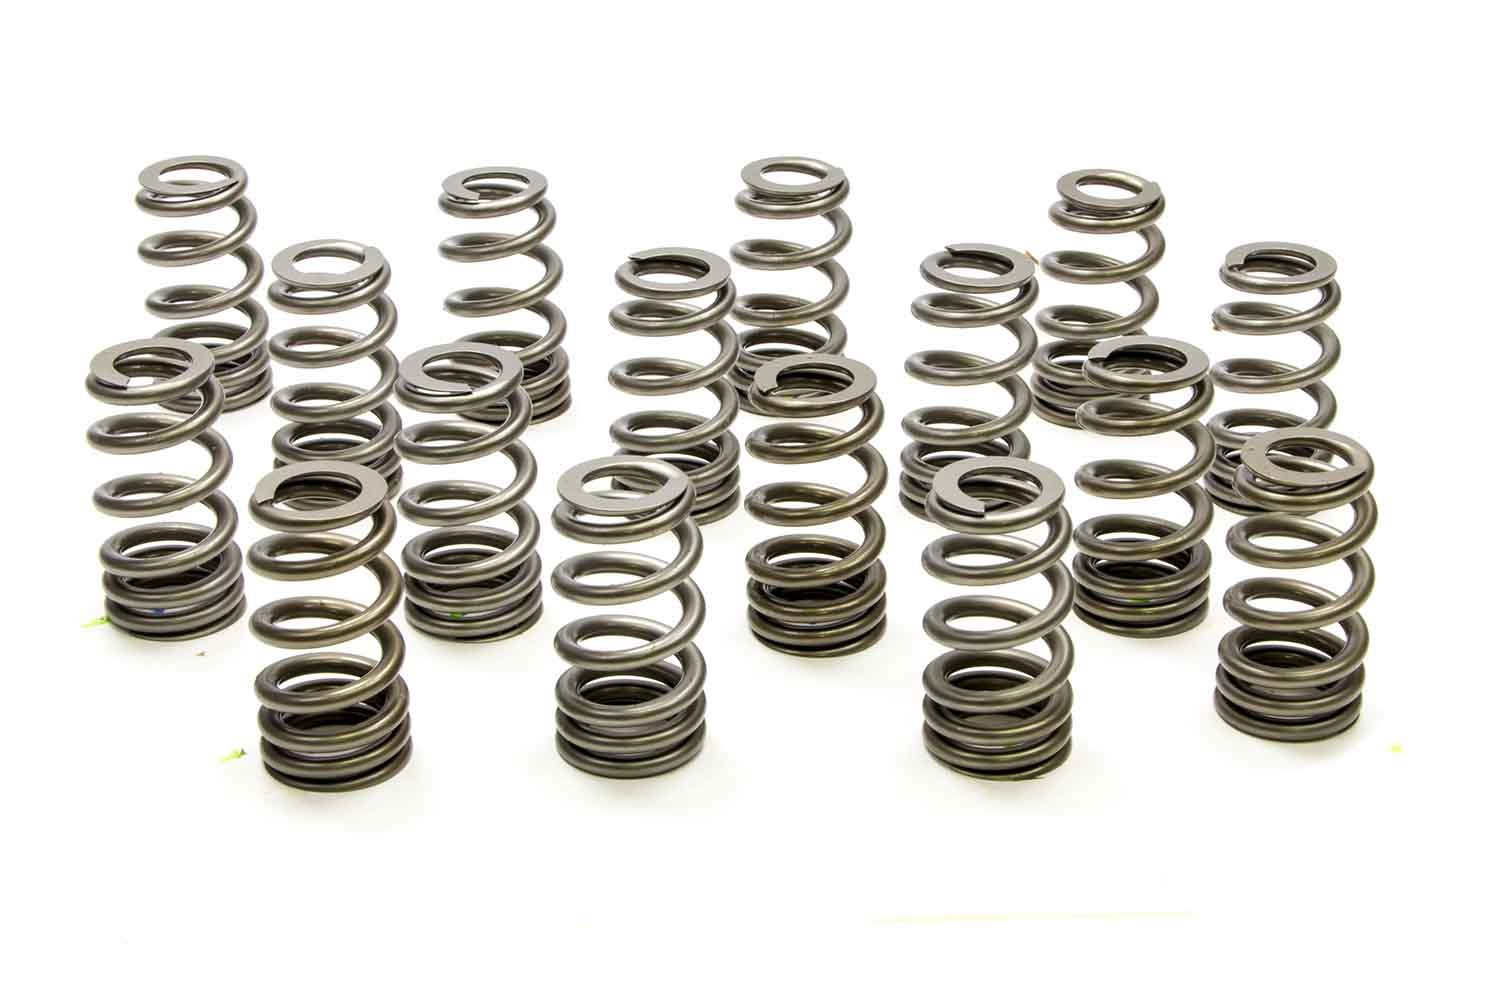 PAC Racing Springs PAC-1409X Valve Spring, 1400 Series Stock Eliminator, Ovate Beehive Spring, 436 lb/in Spring Rate, 1.190 in Coil Bind, 1.250 in OD, Set of 16